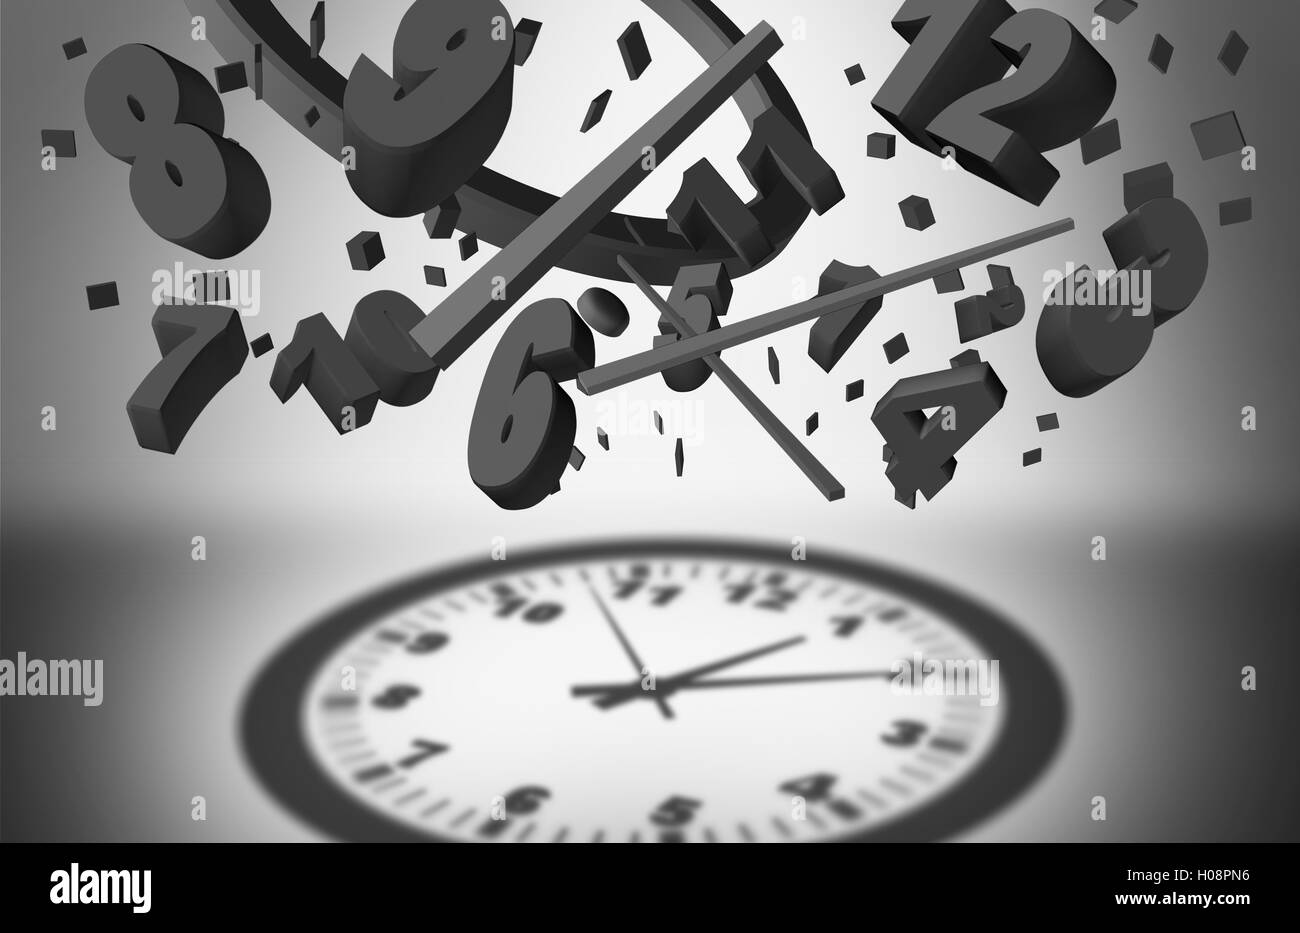 Concept of time management and controlling business planning efficiency as a group of falling clock pieces creating - Stock Image